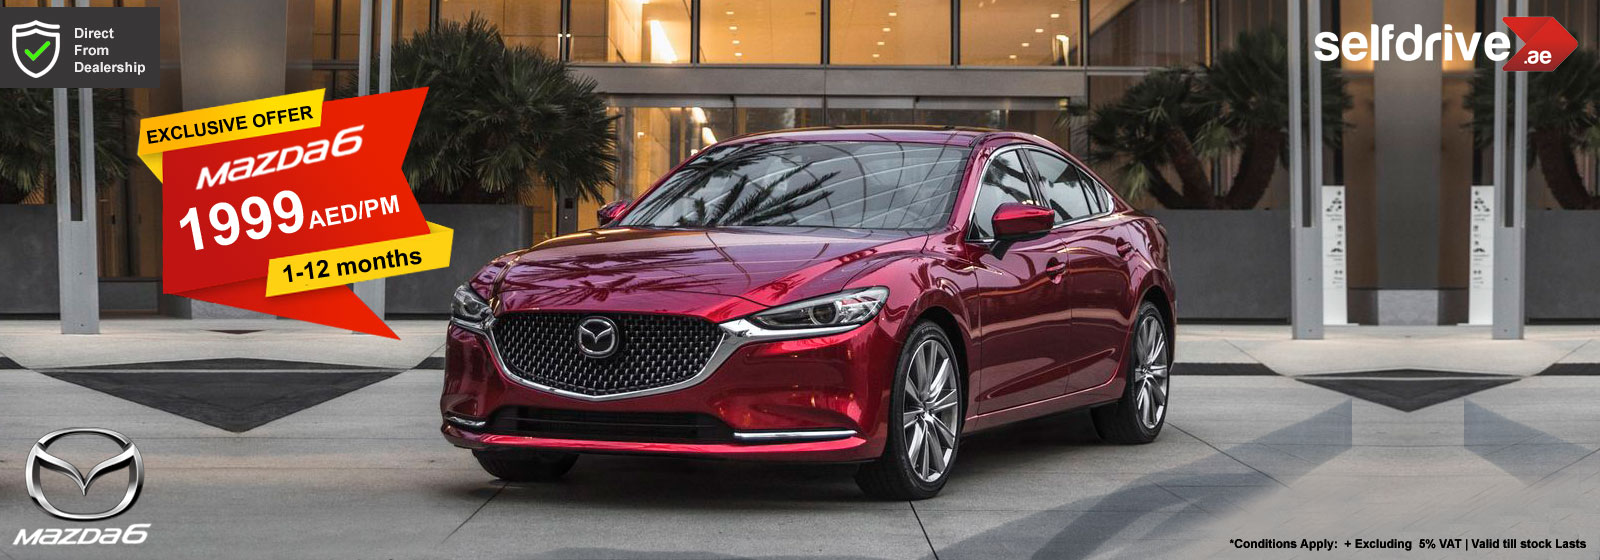 Rent a Car Dubai Mazda 6